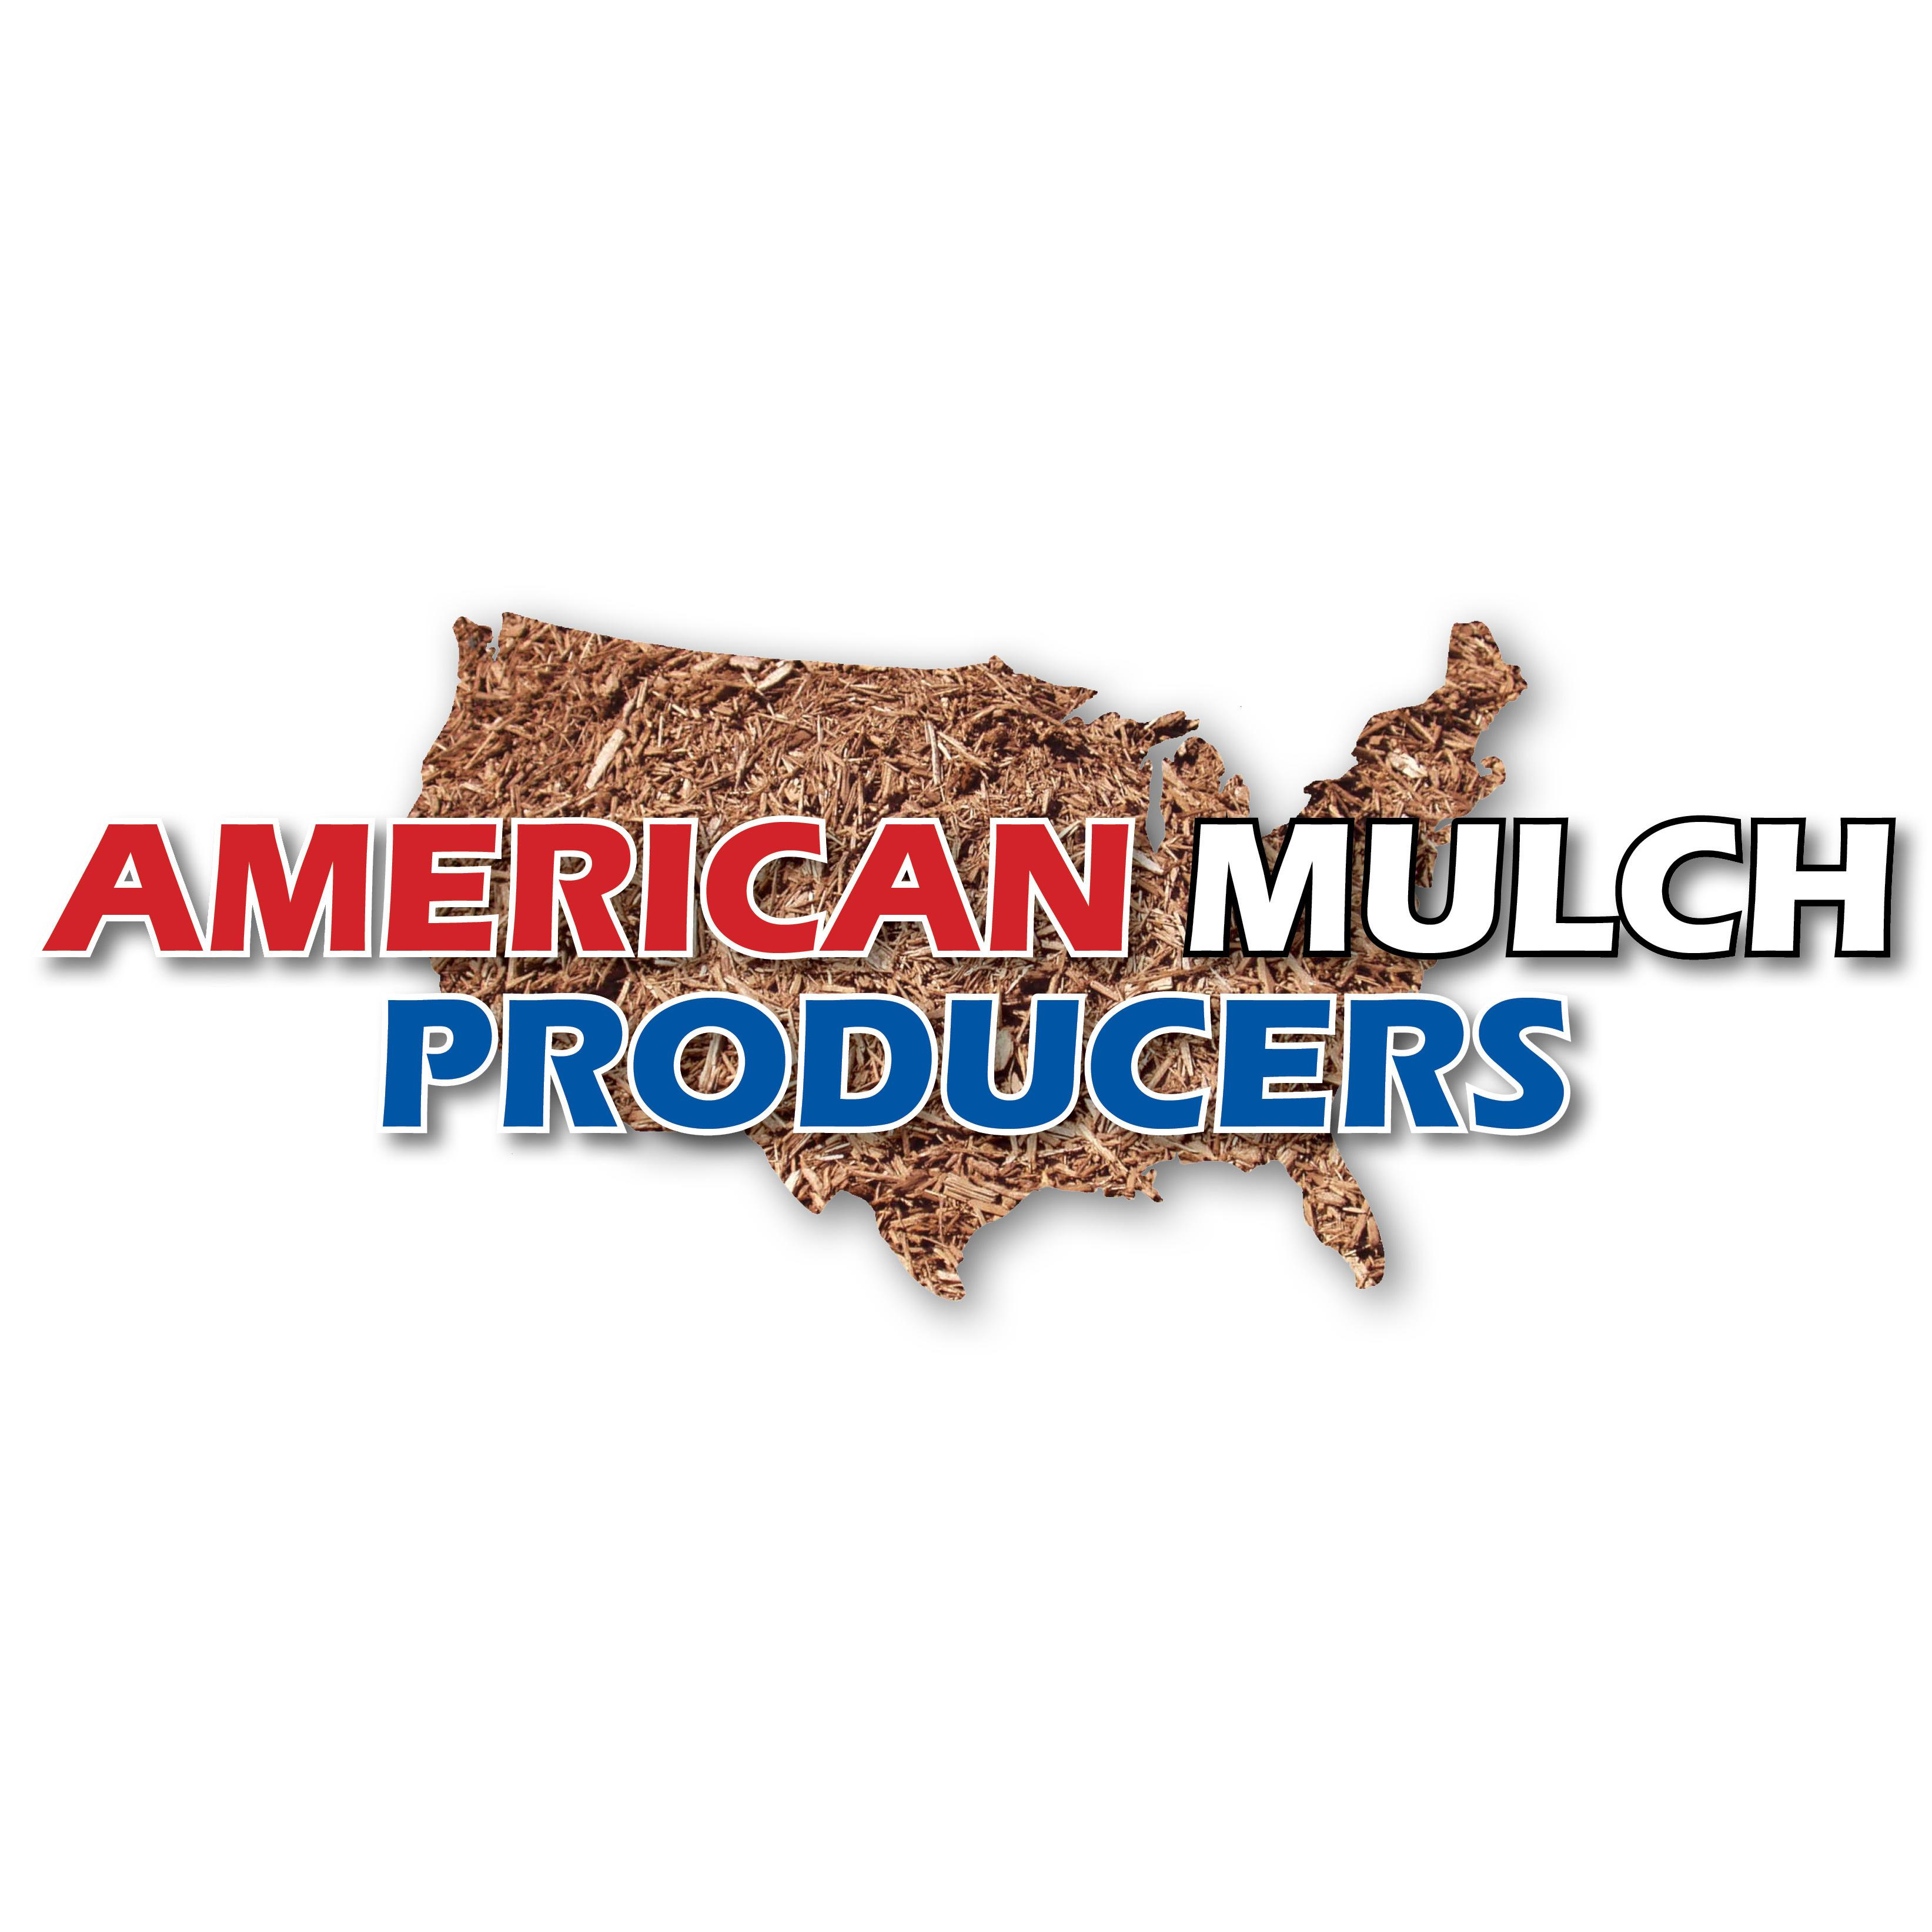 American Mulch Producers image 0